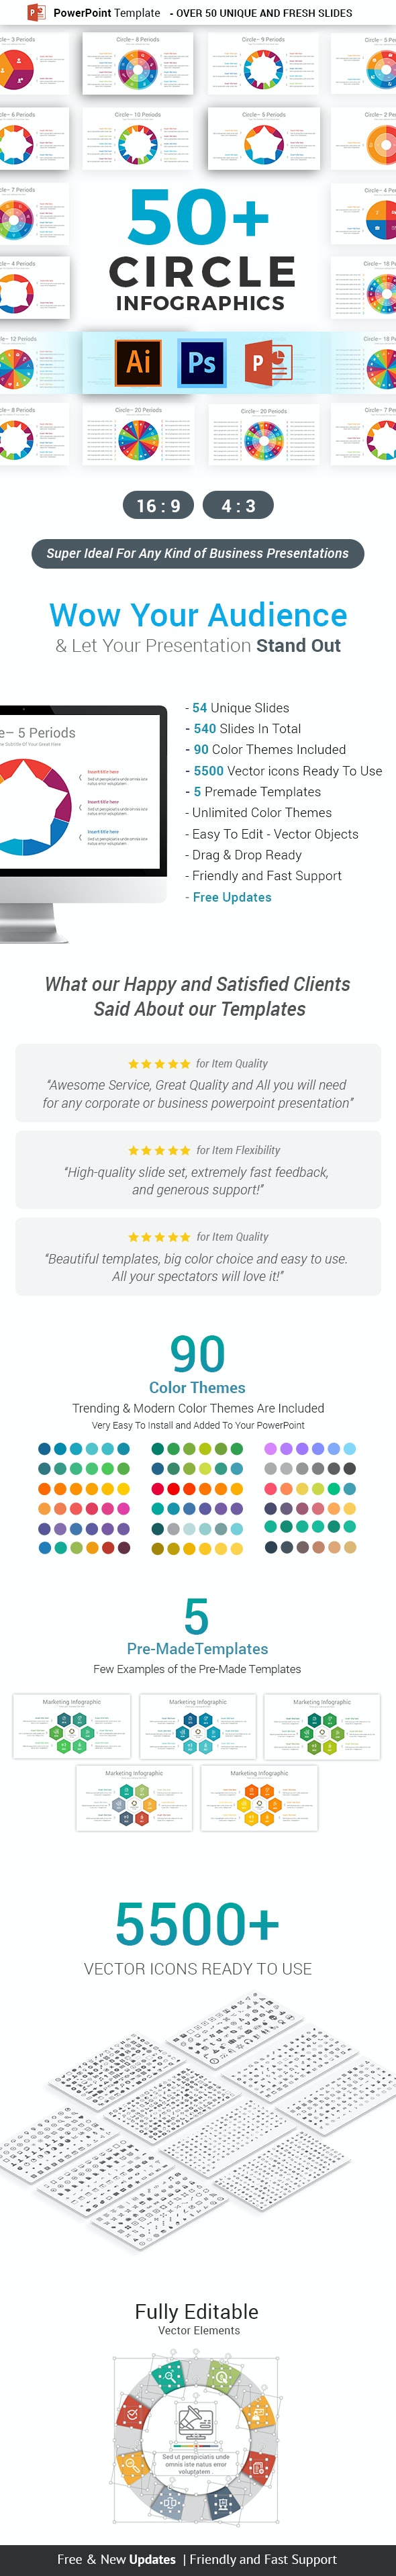 Circle Infographics PowerPoint Template Diagrams - Business PowerPoint Templates